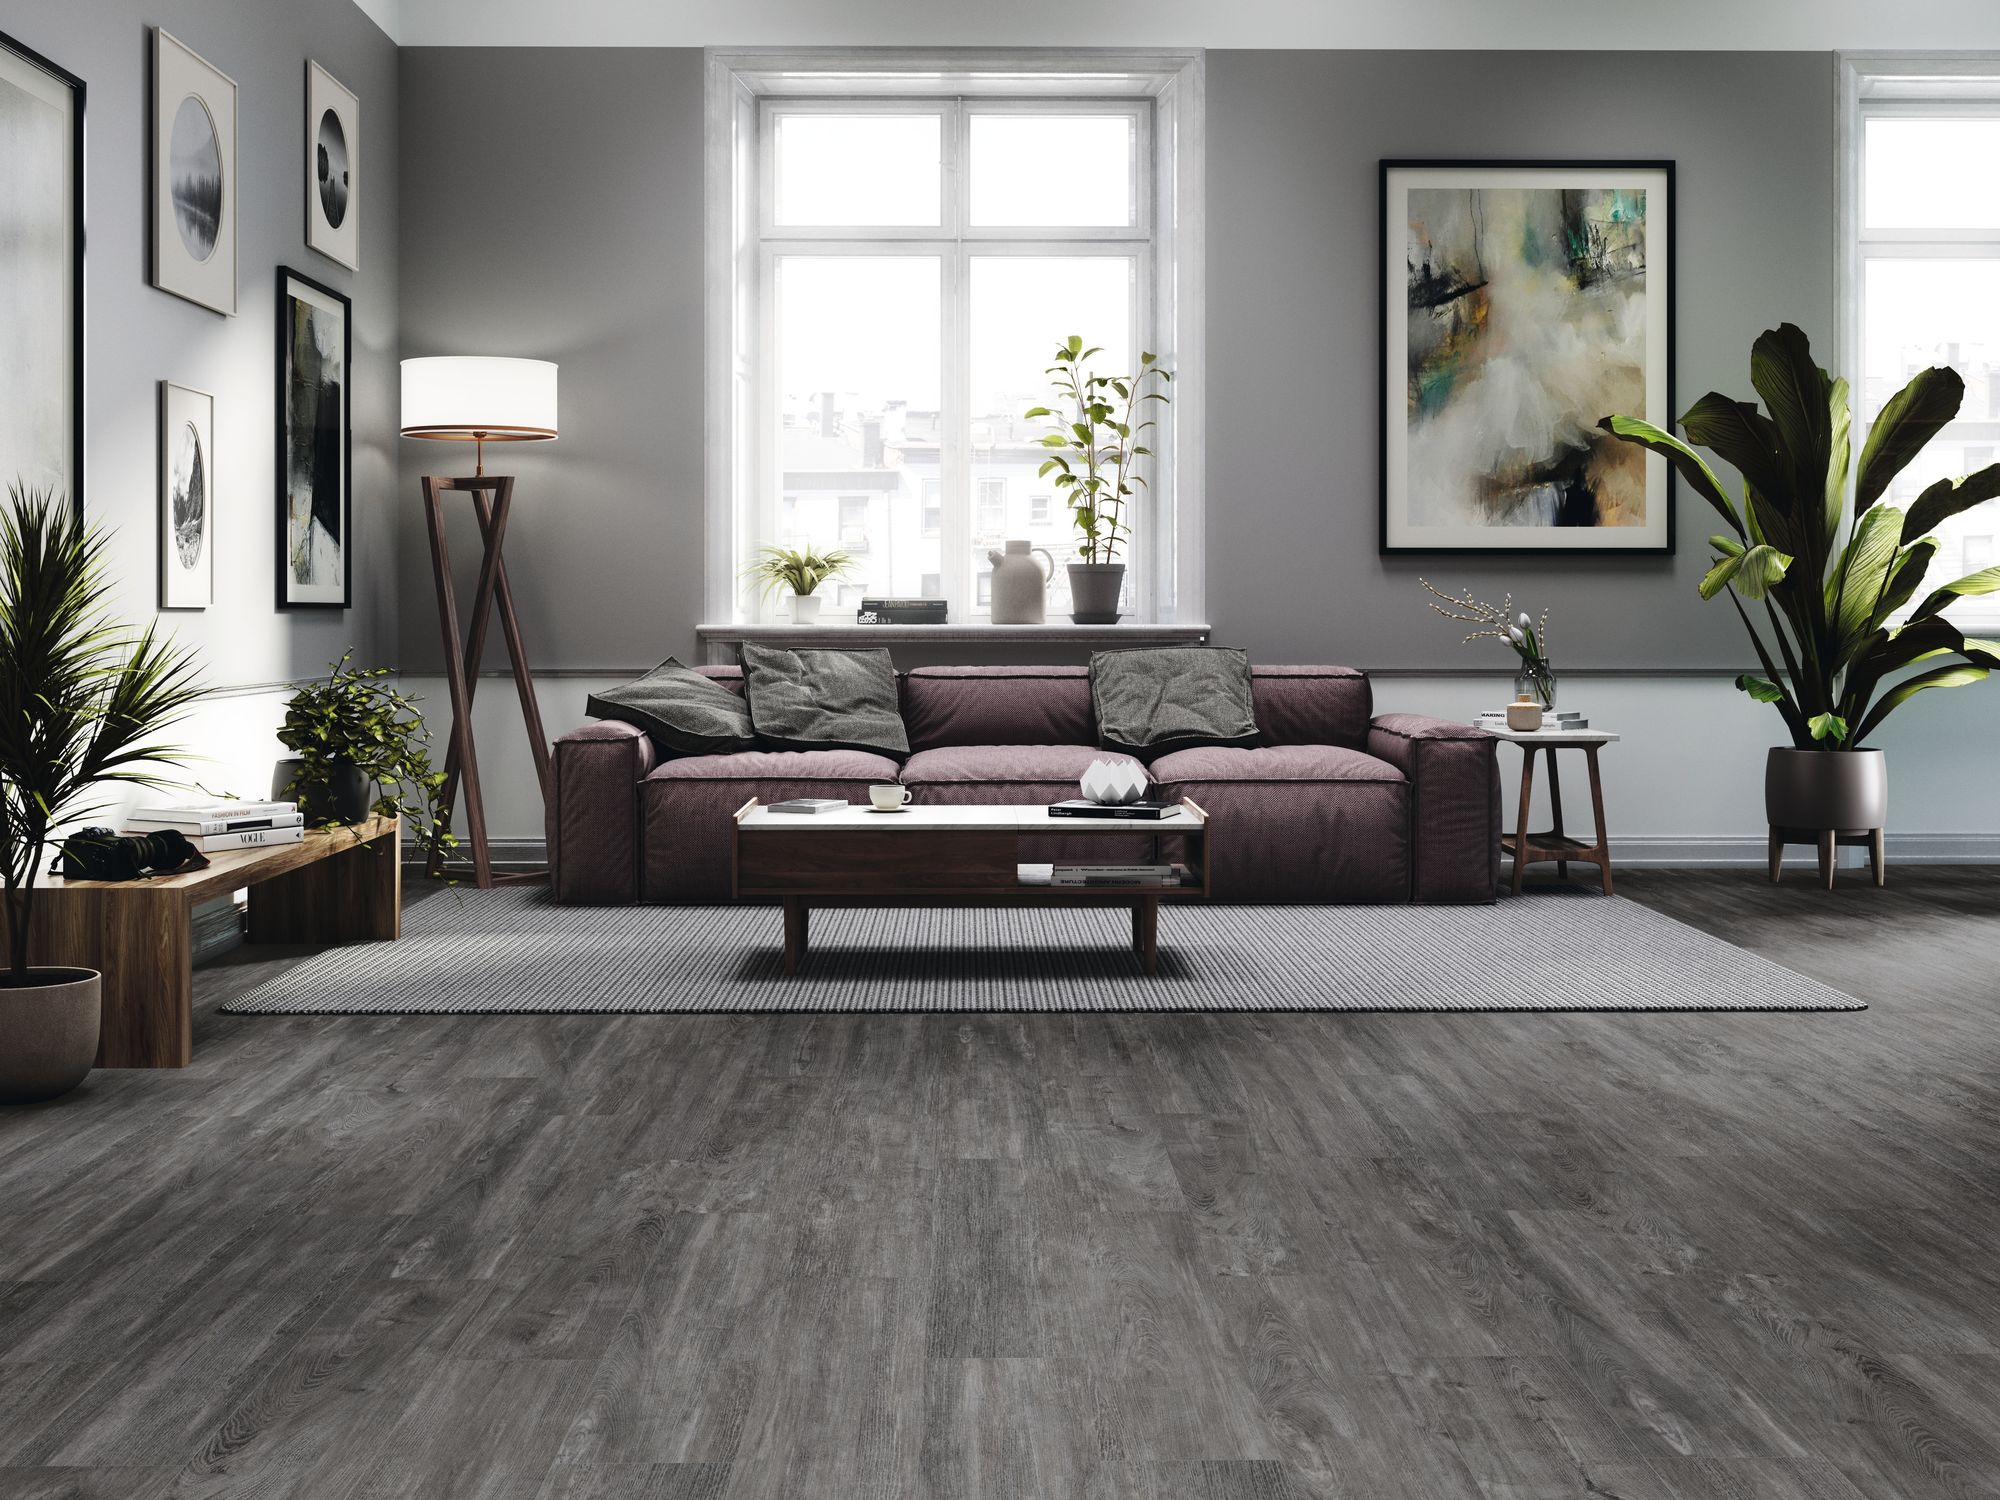 Epping Anthracite 20x110 cm.